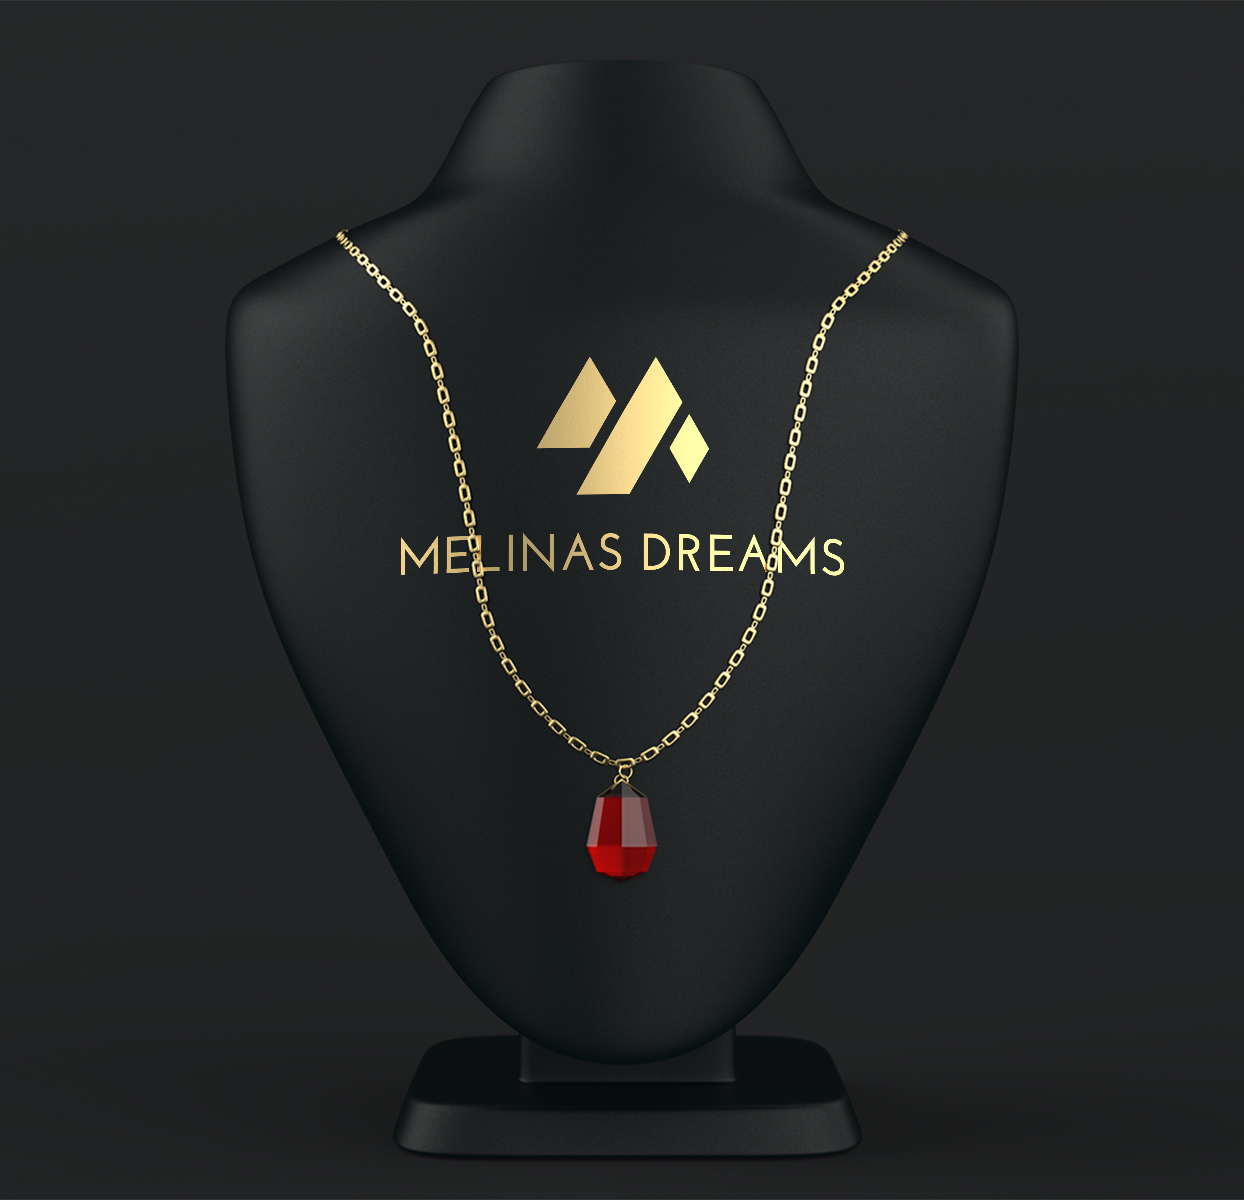 DiptaDesign - Melinas Dreams5.jpg